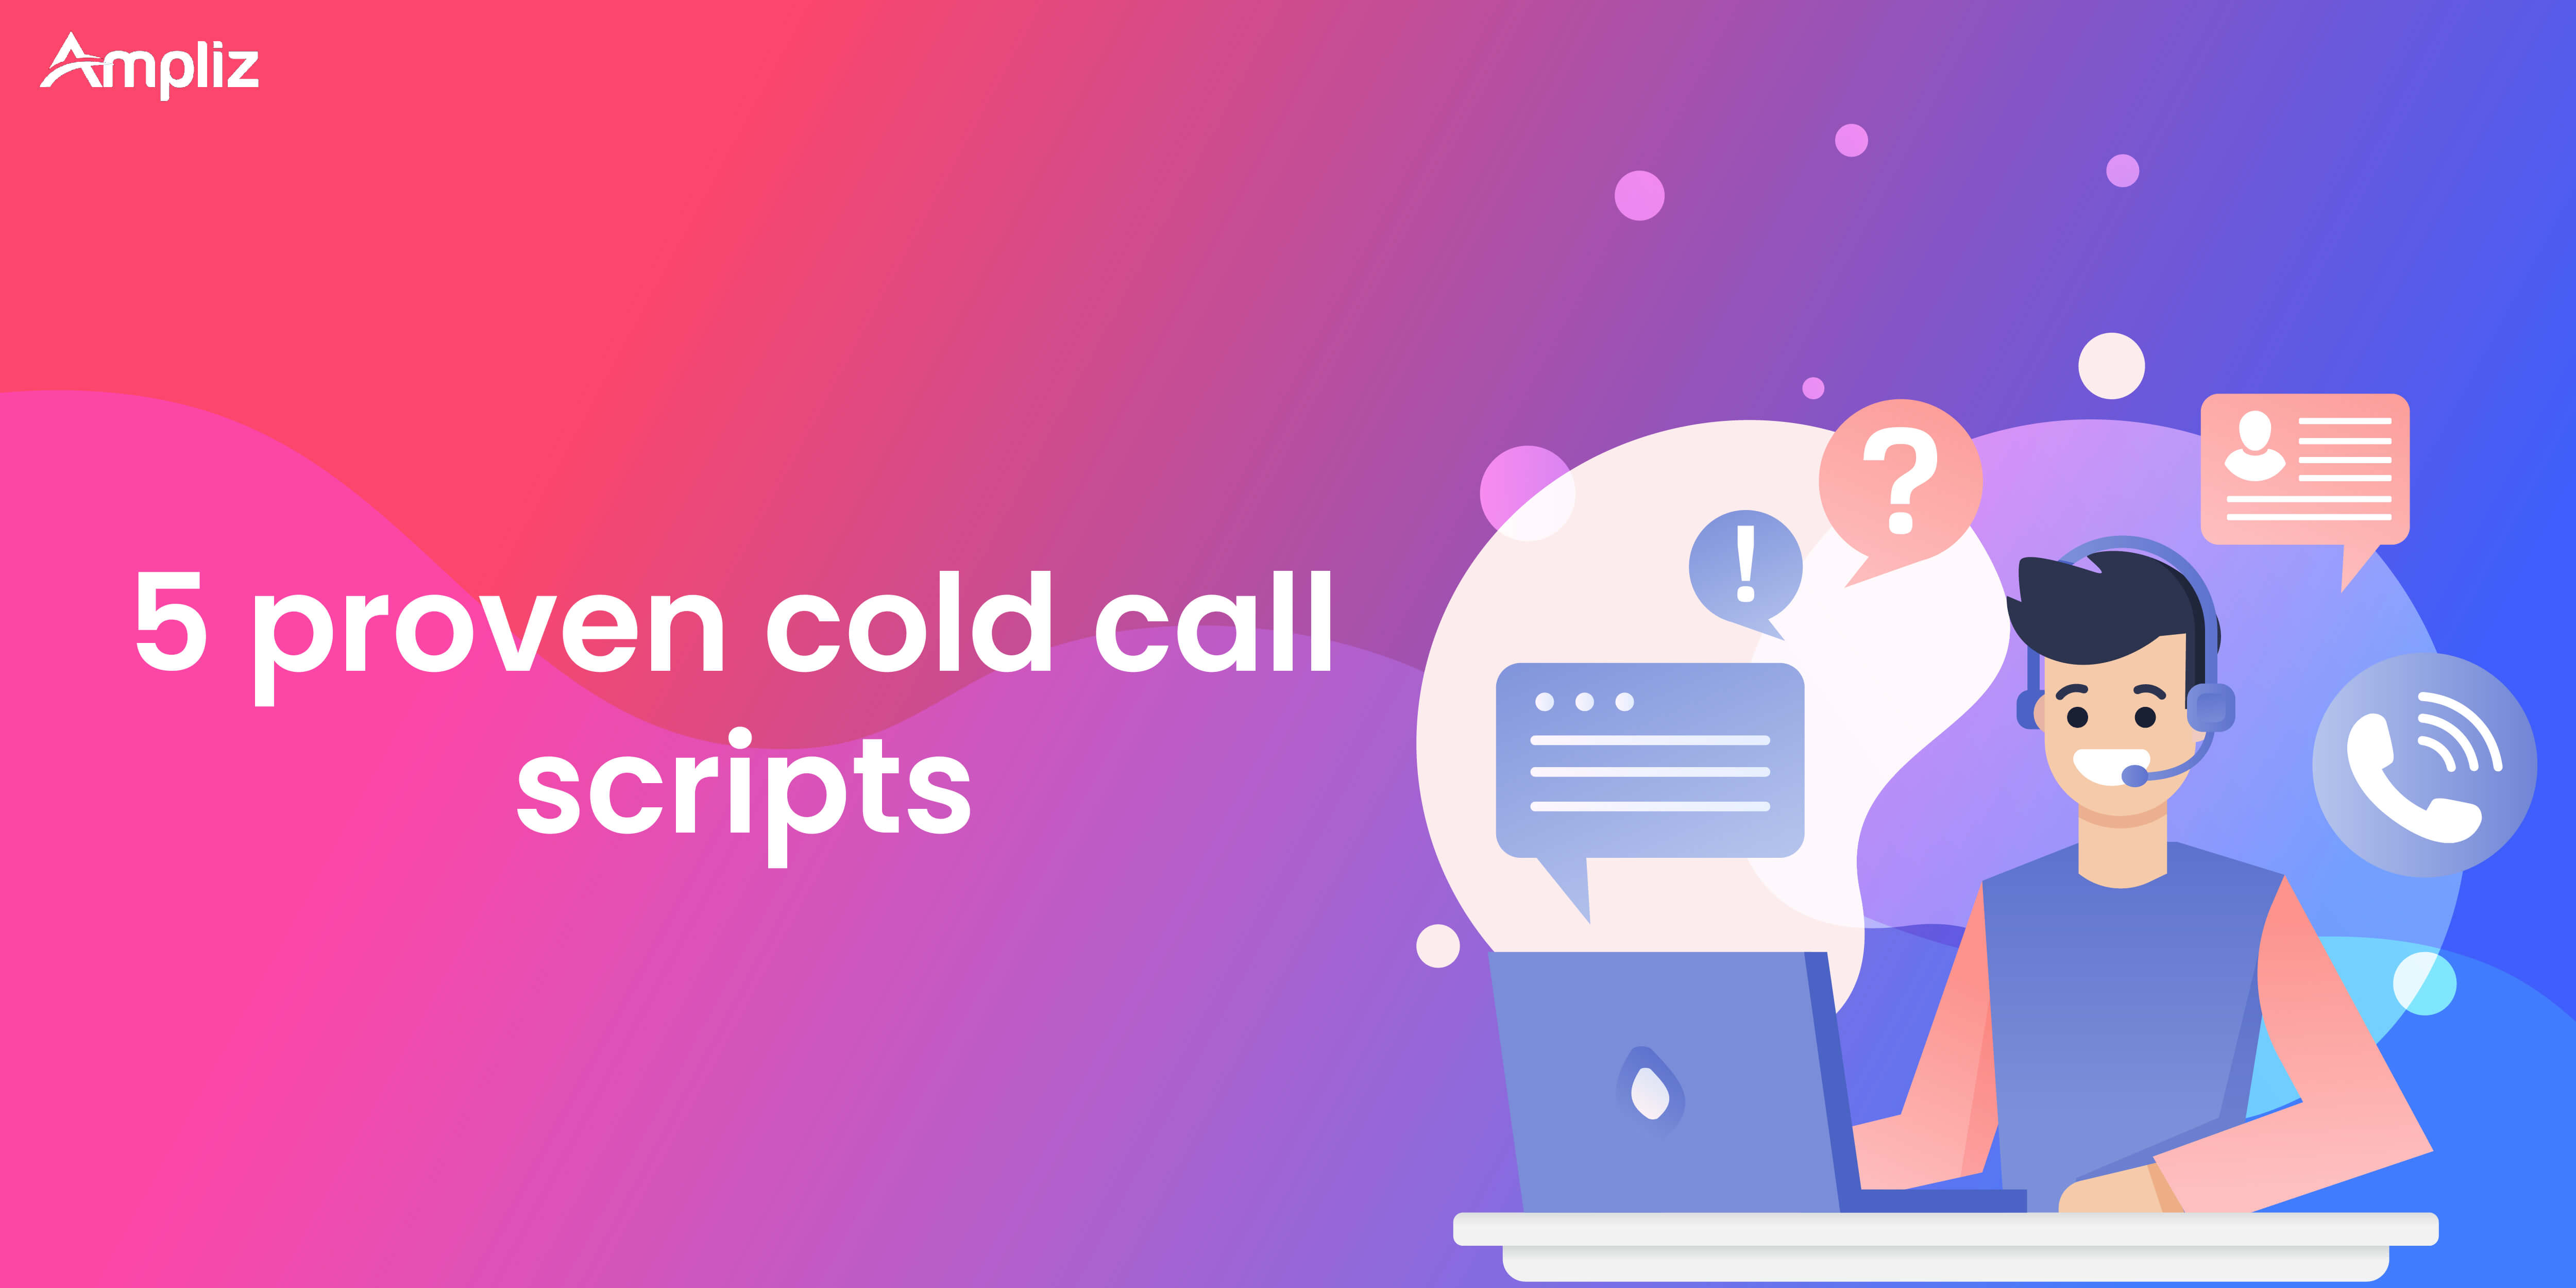 Cold call scripts